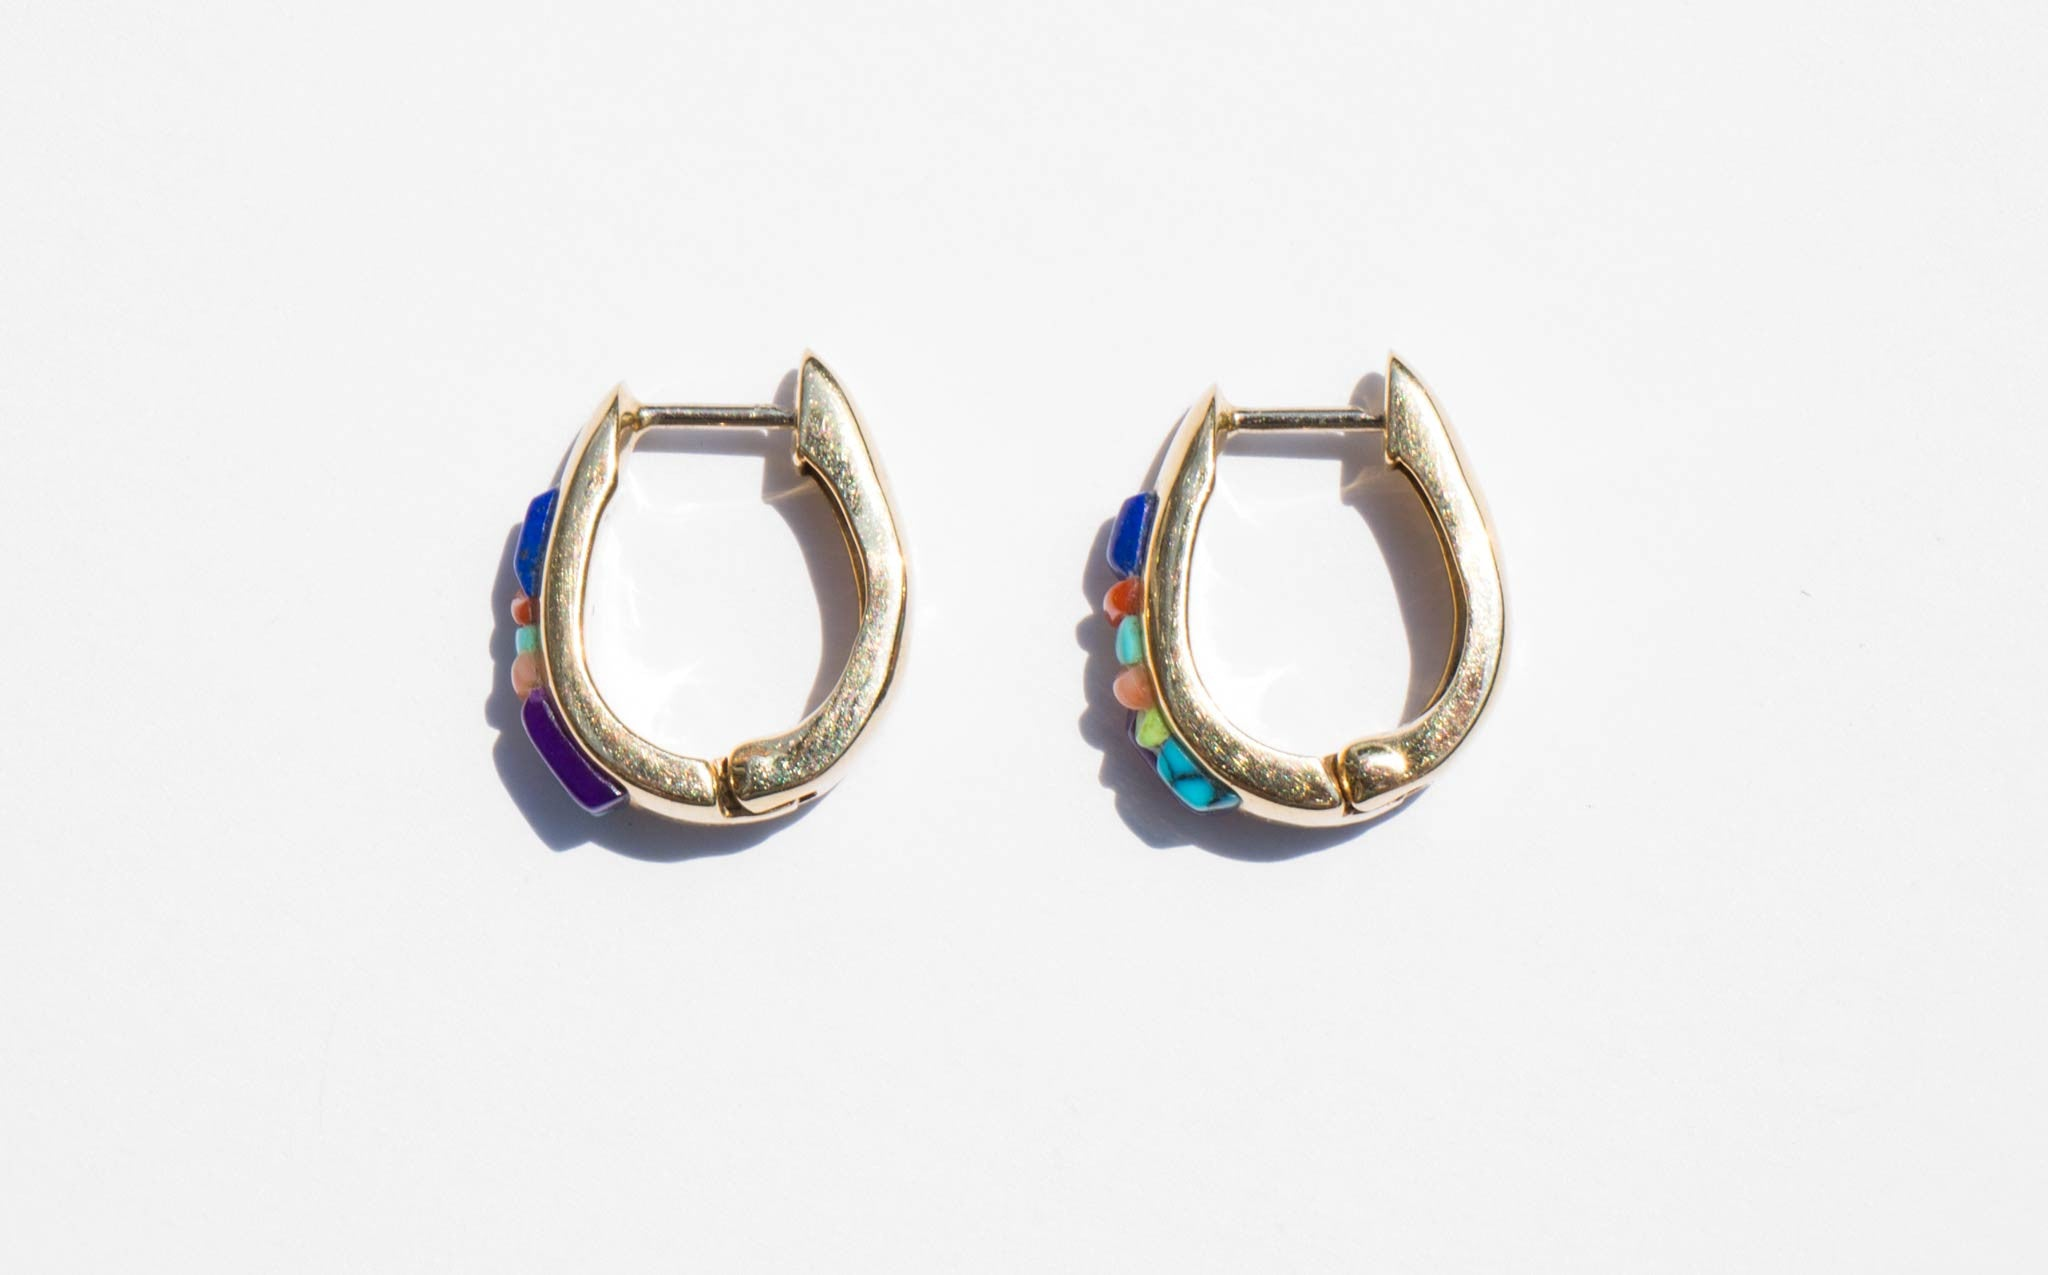 14K Gold With Natural Stone Inlay Earrings